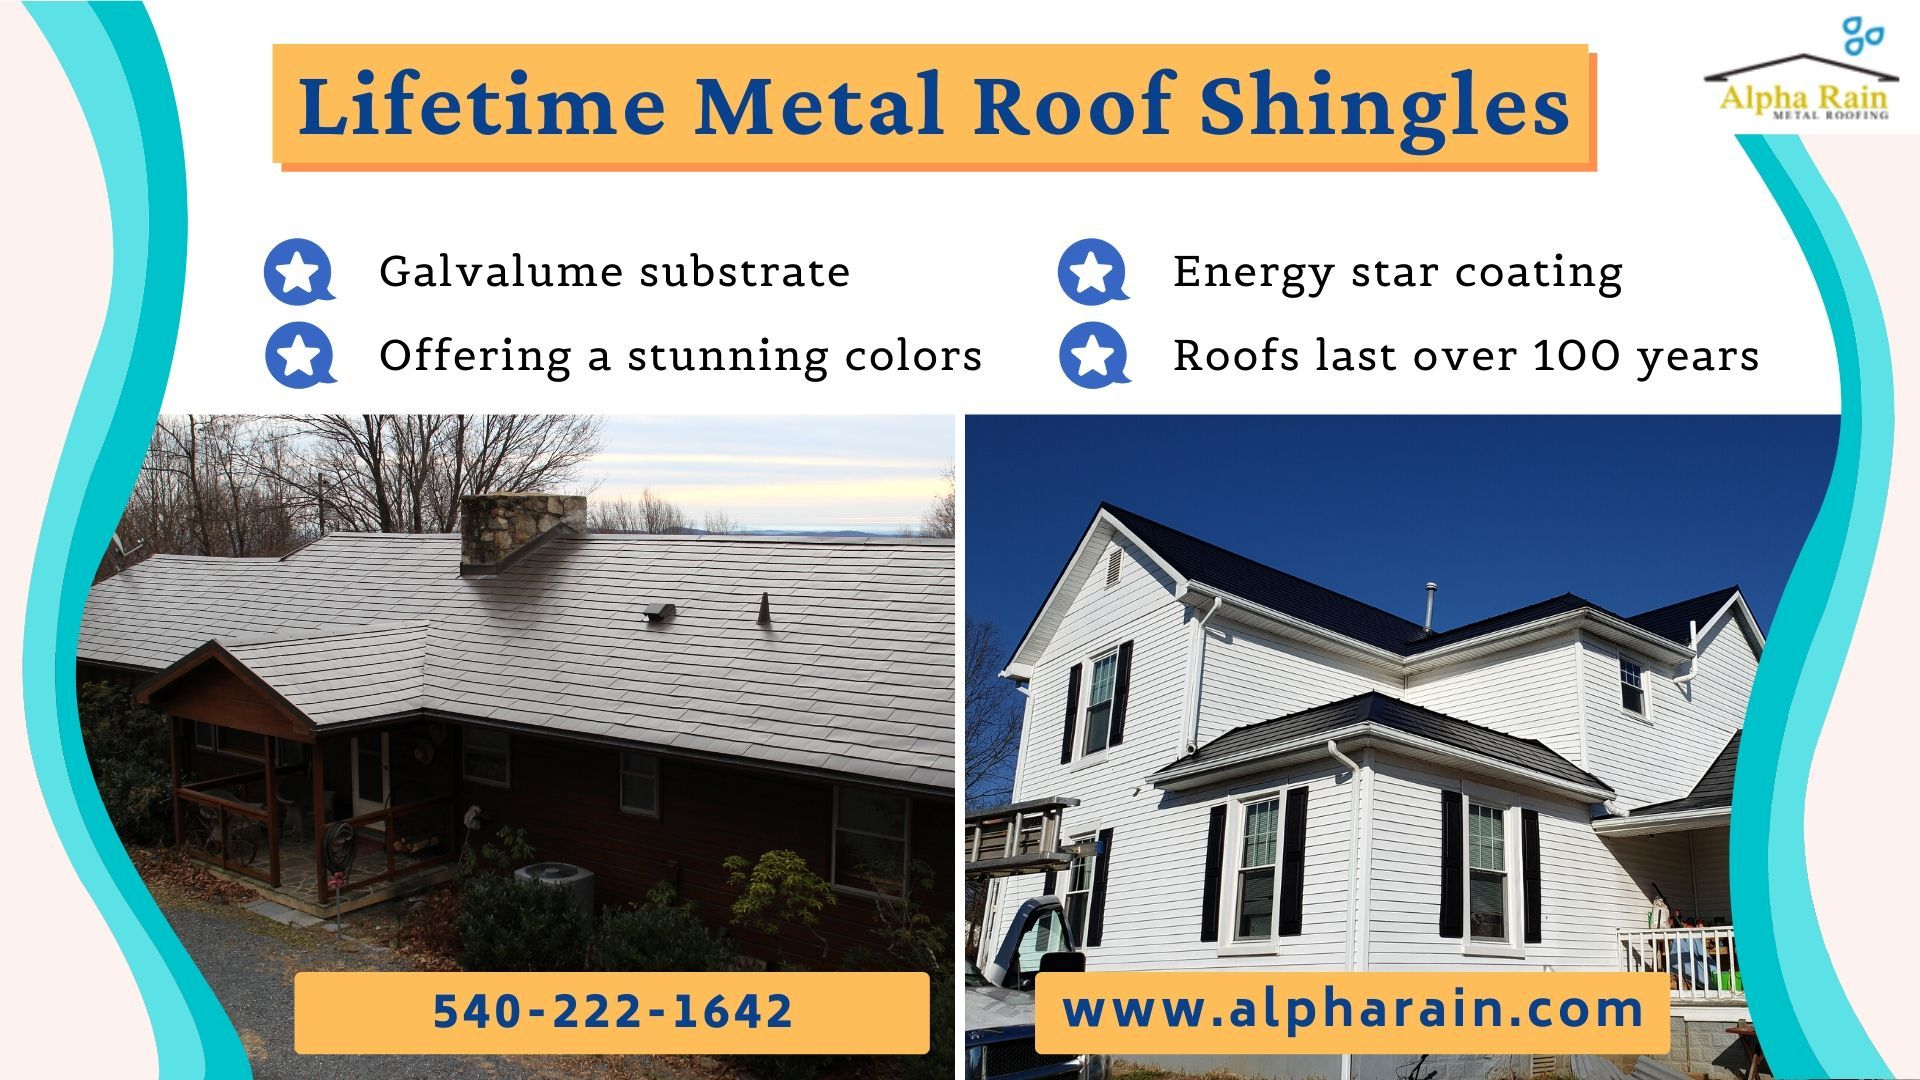 Cost Effective Roofing With Lifetime Option By Alpha Rain In 2020 Metal Shingle Roof Metal Shingles Shingling